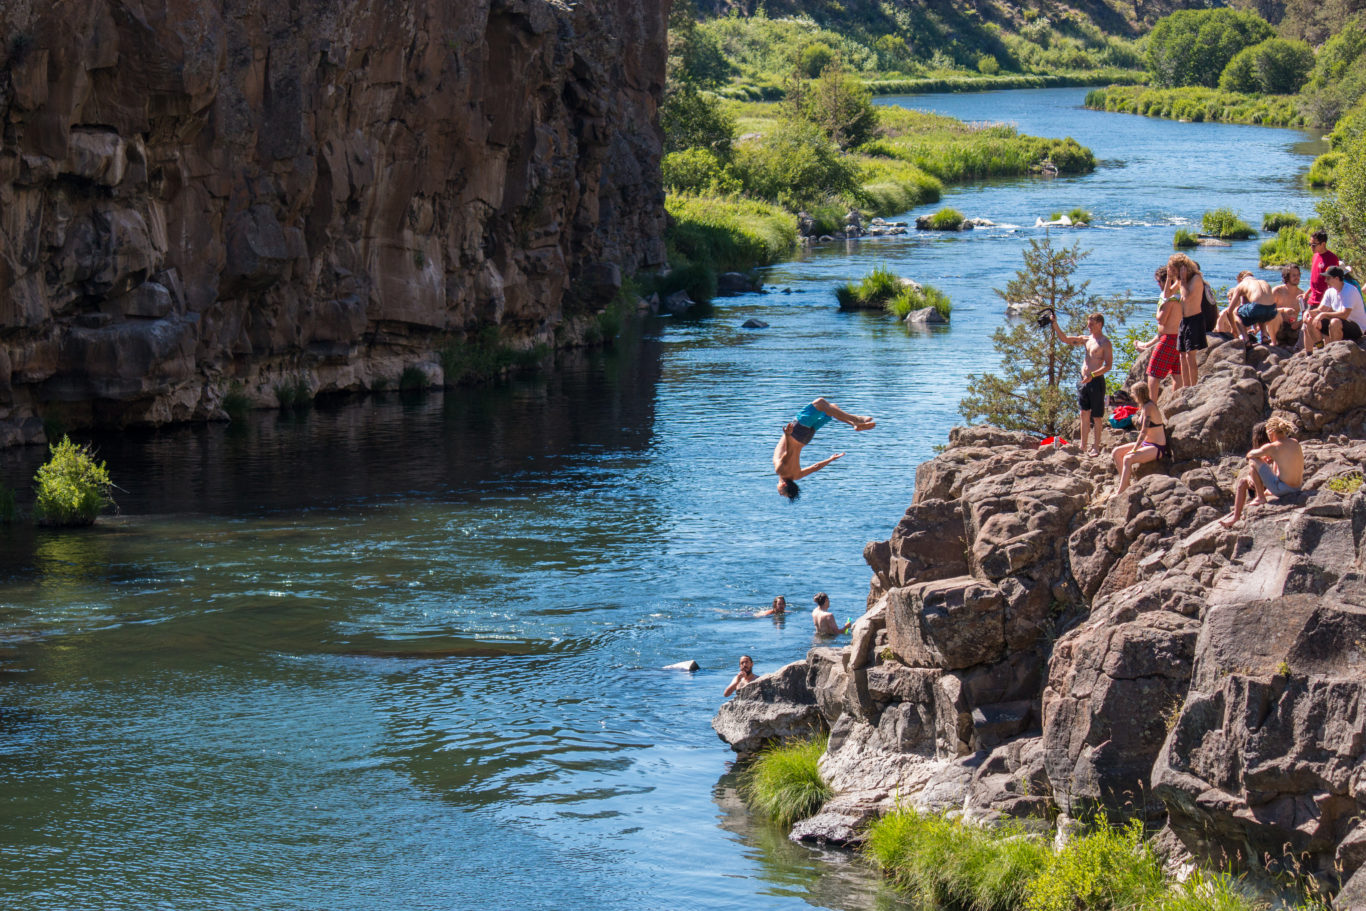 Victor Arias backflips into the river in Oregon - Photograph by Erick Garcia